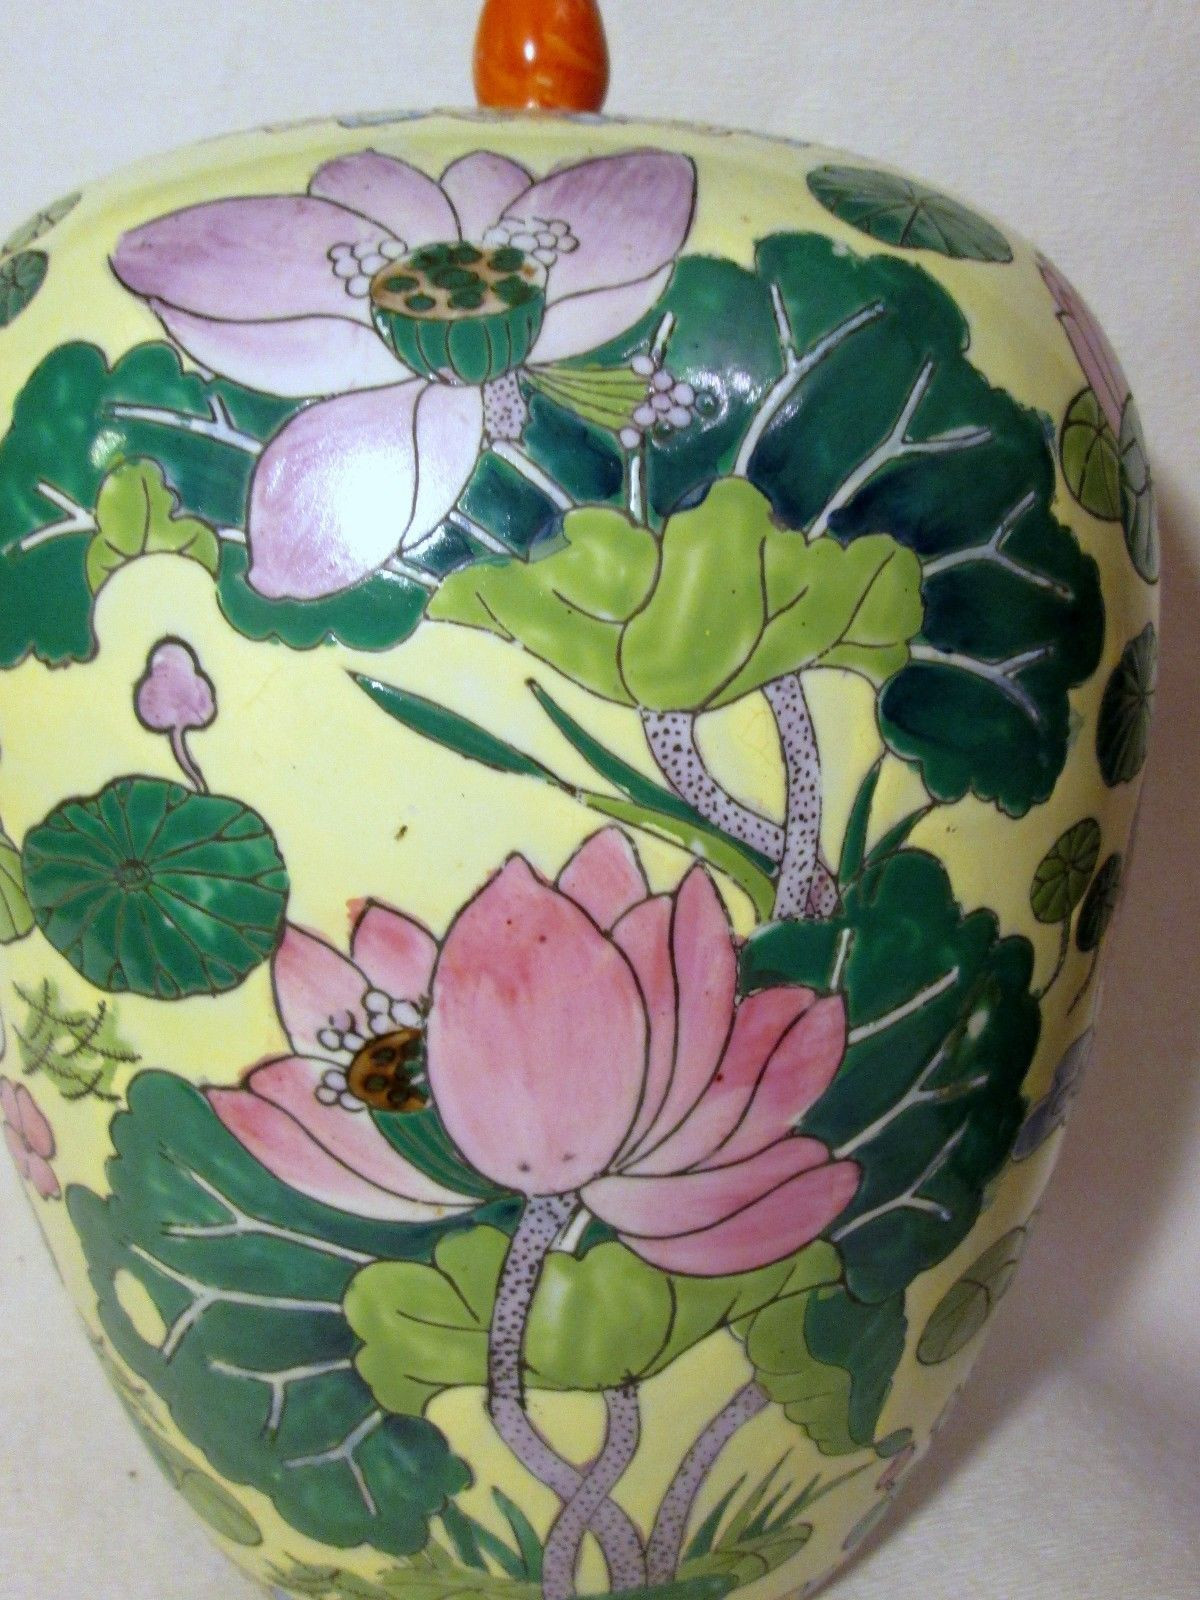 lotus flower vase of ginger jar vase lid birds lotus flower cranes dragon fly yellow in ginger jar vase lid birds lotus flower cranes dragon fly yellow ebay 40 00